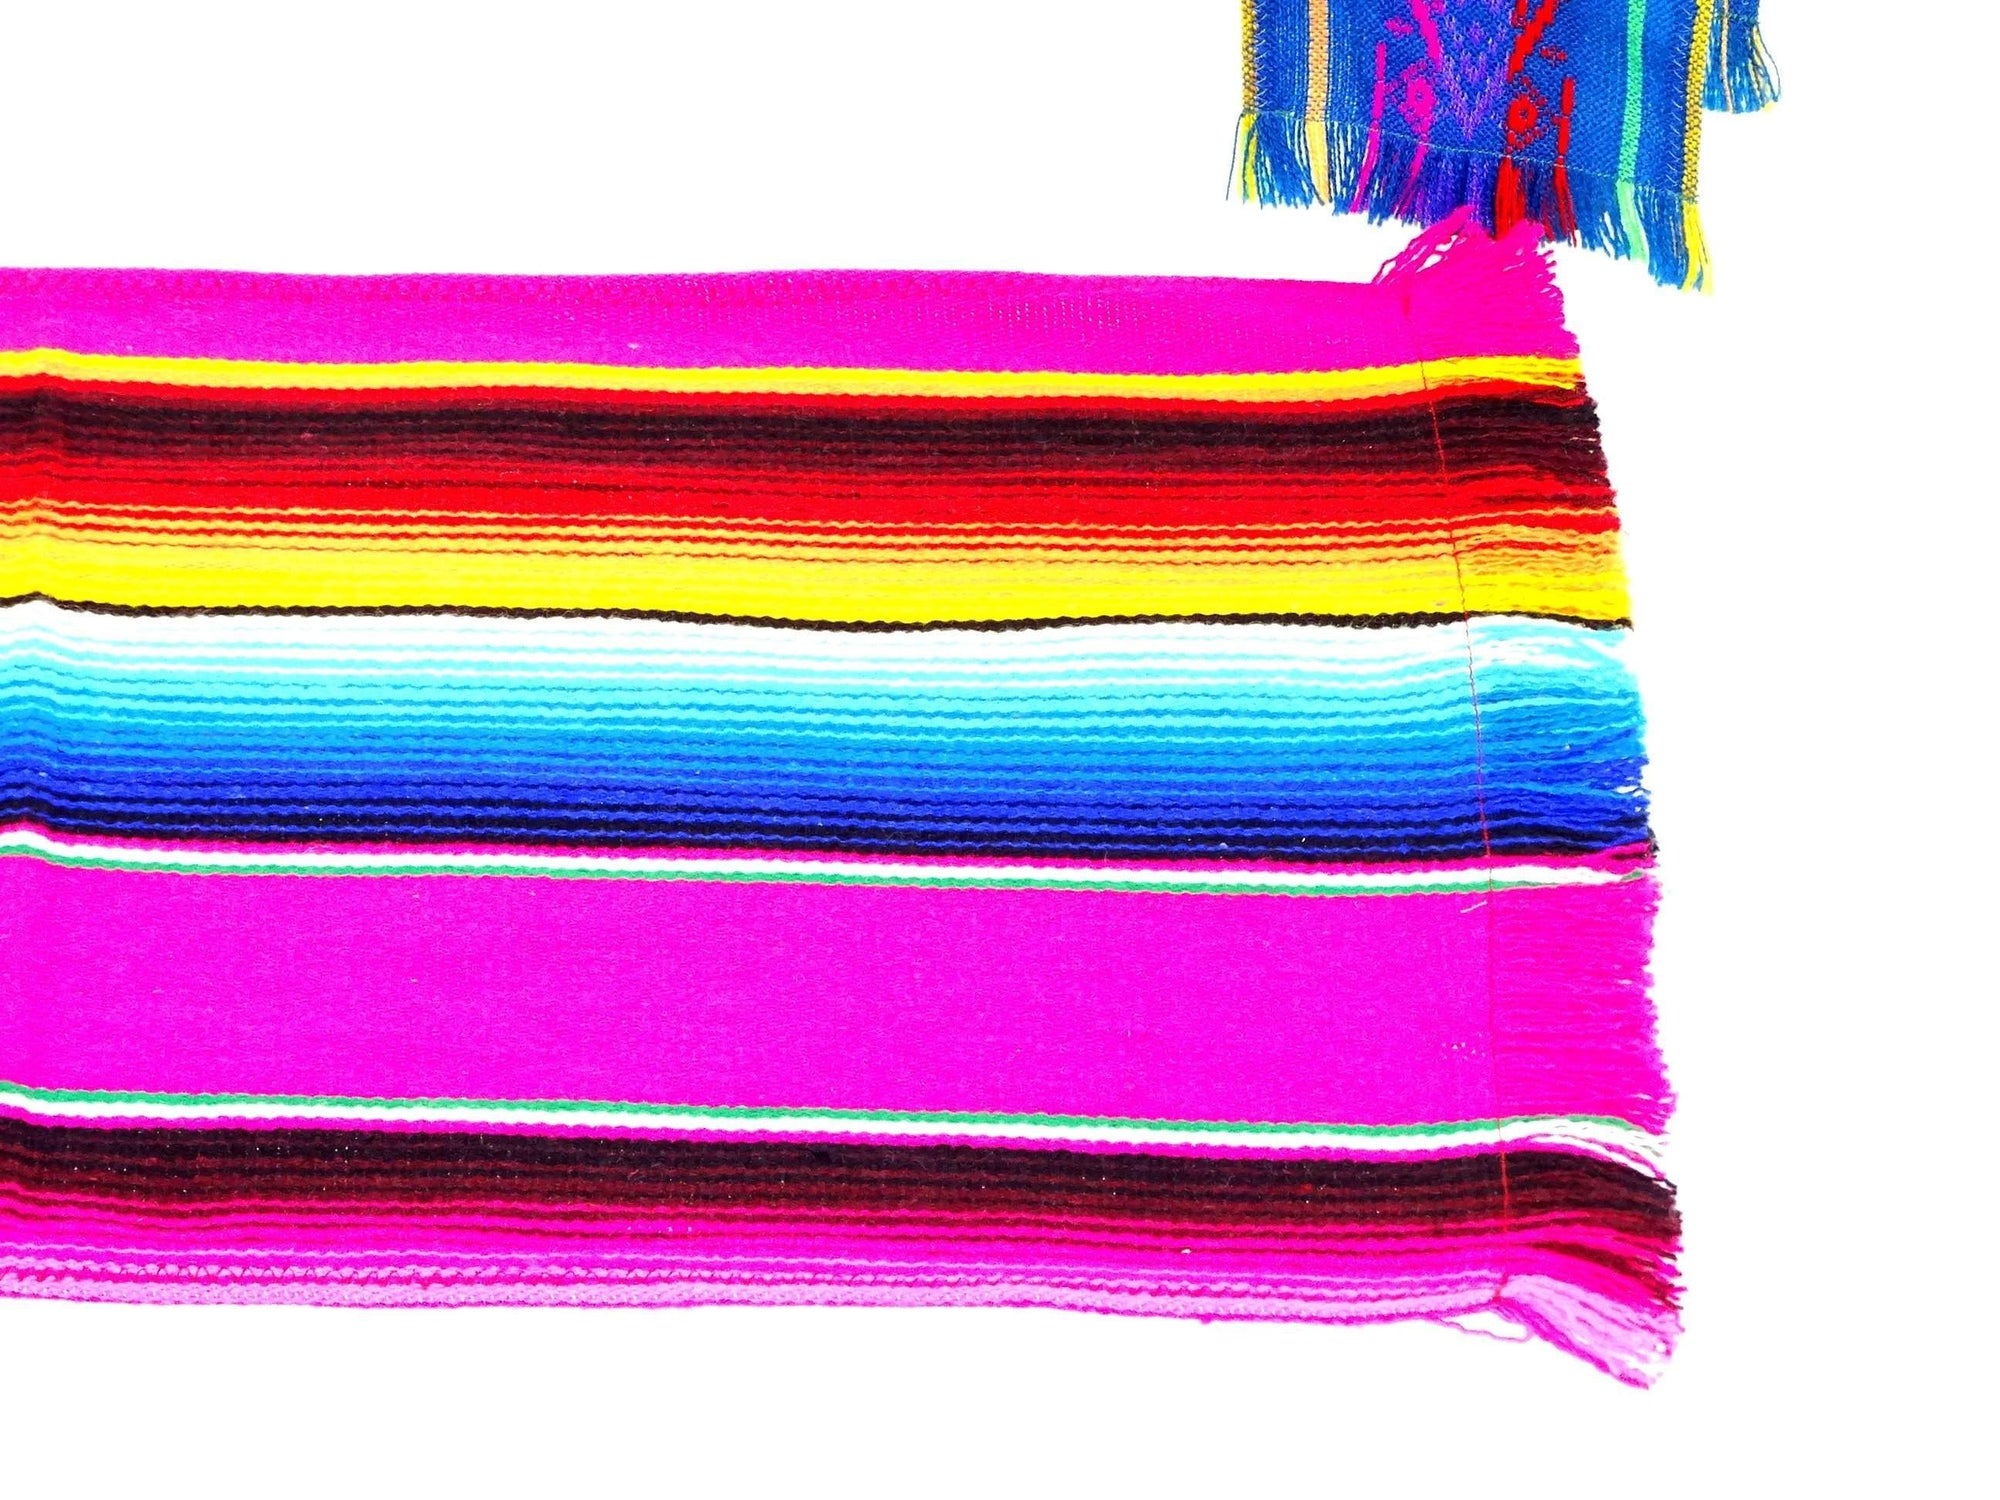 Charmant Mexican Table Runner   PINK Mexican Table Runner, Authentic Serape Fabric  Table Cloth From Mexico